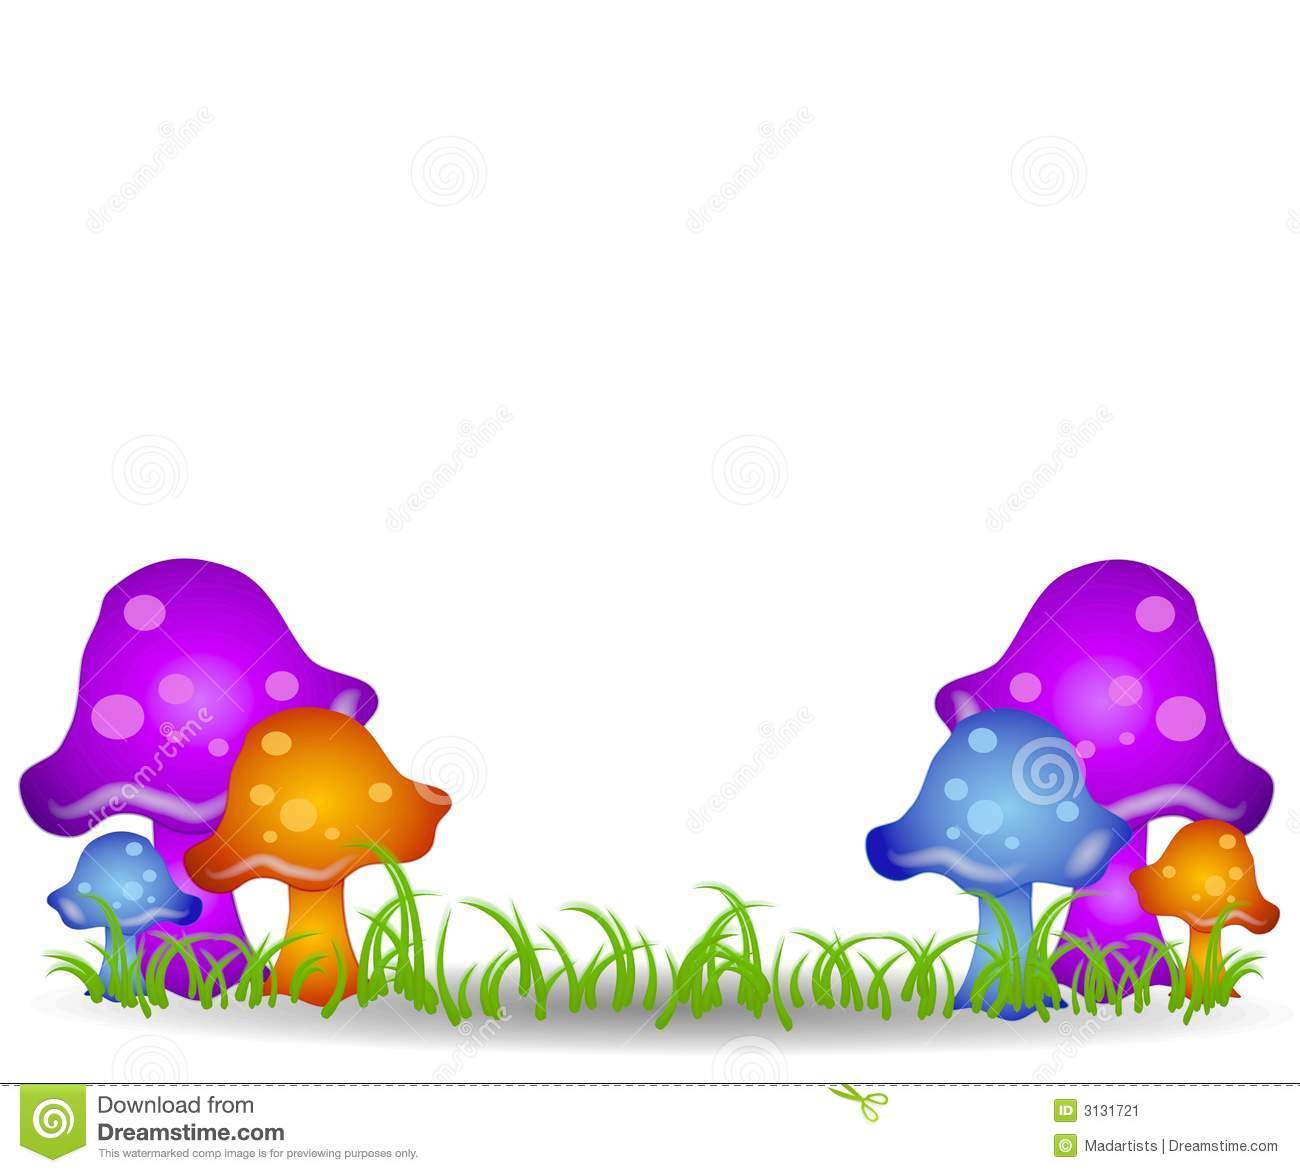 ... featuring a number of colorful mushrooms in a grassy meadow